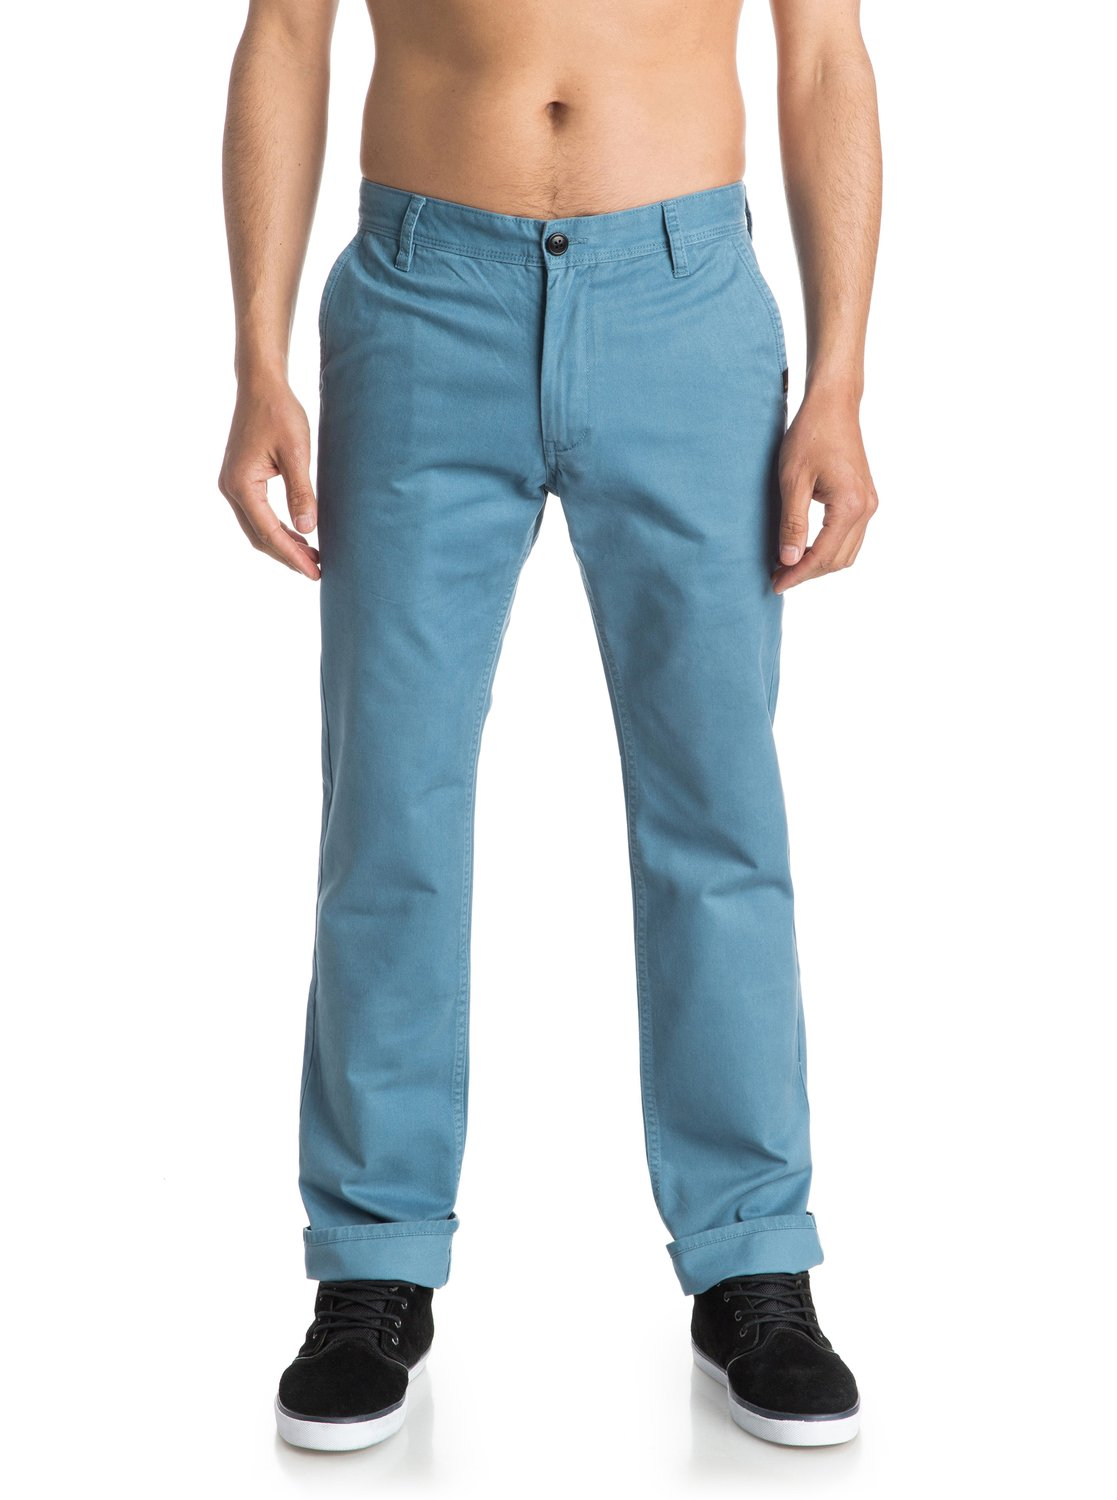 Find chinos from a vast selection of Pants for Men. Get great deals on eBay!